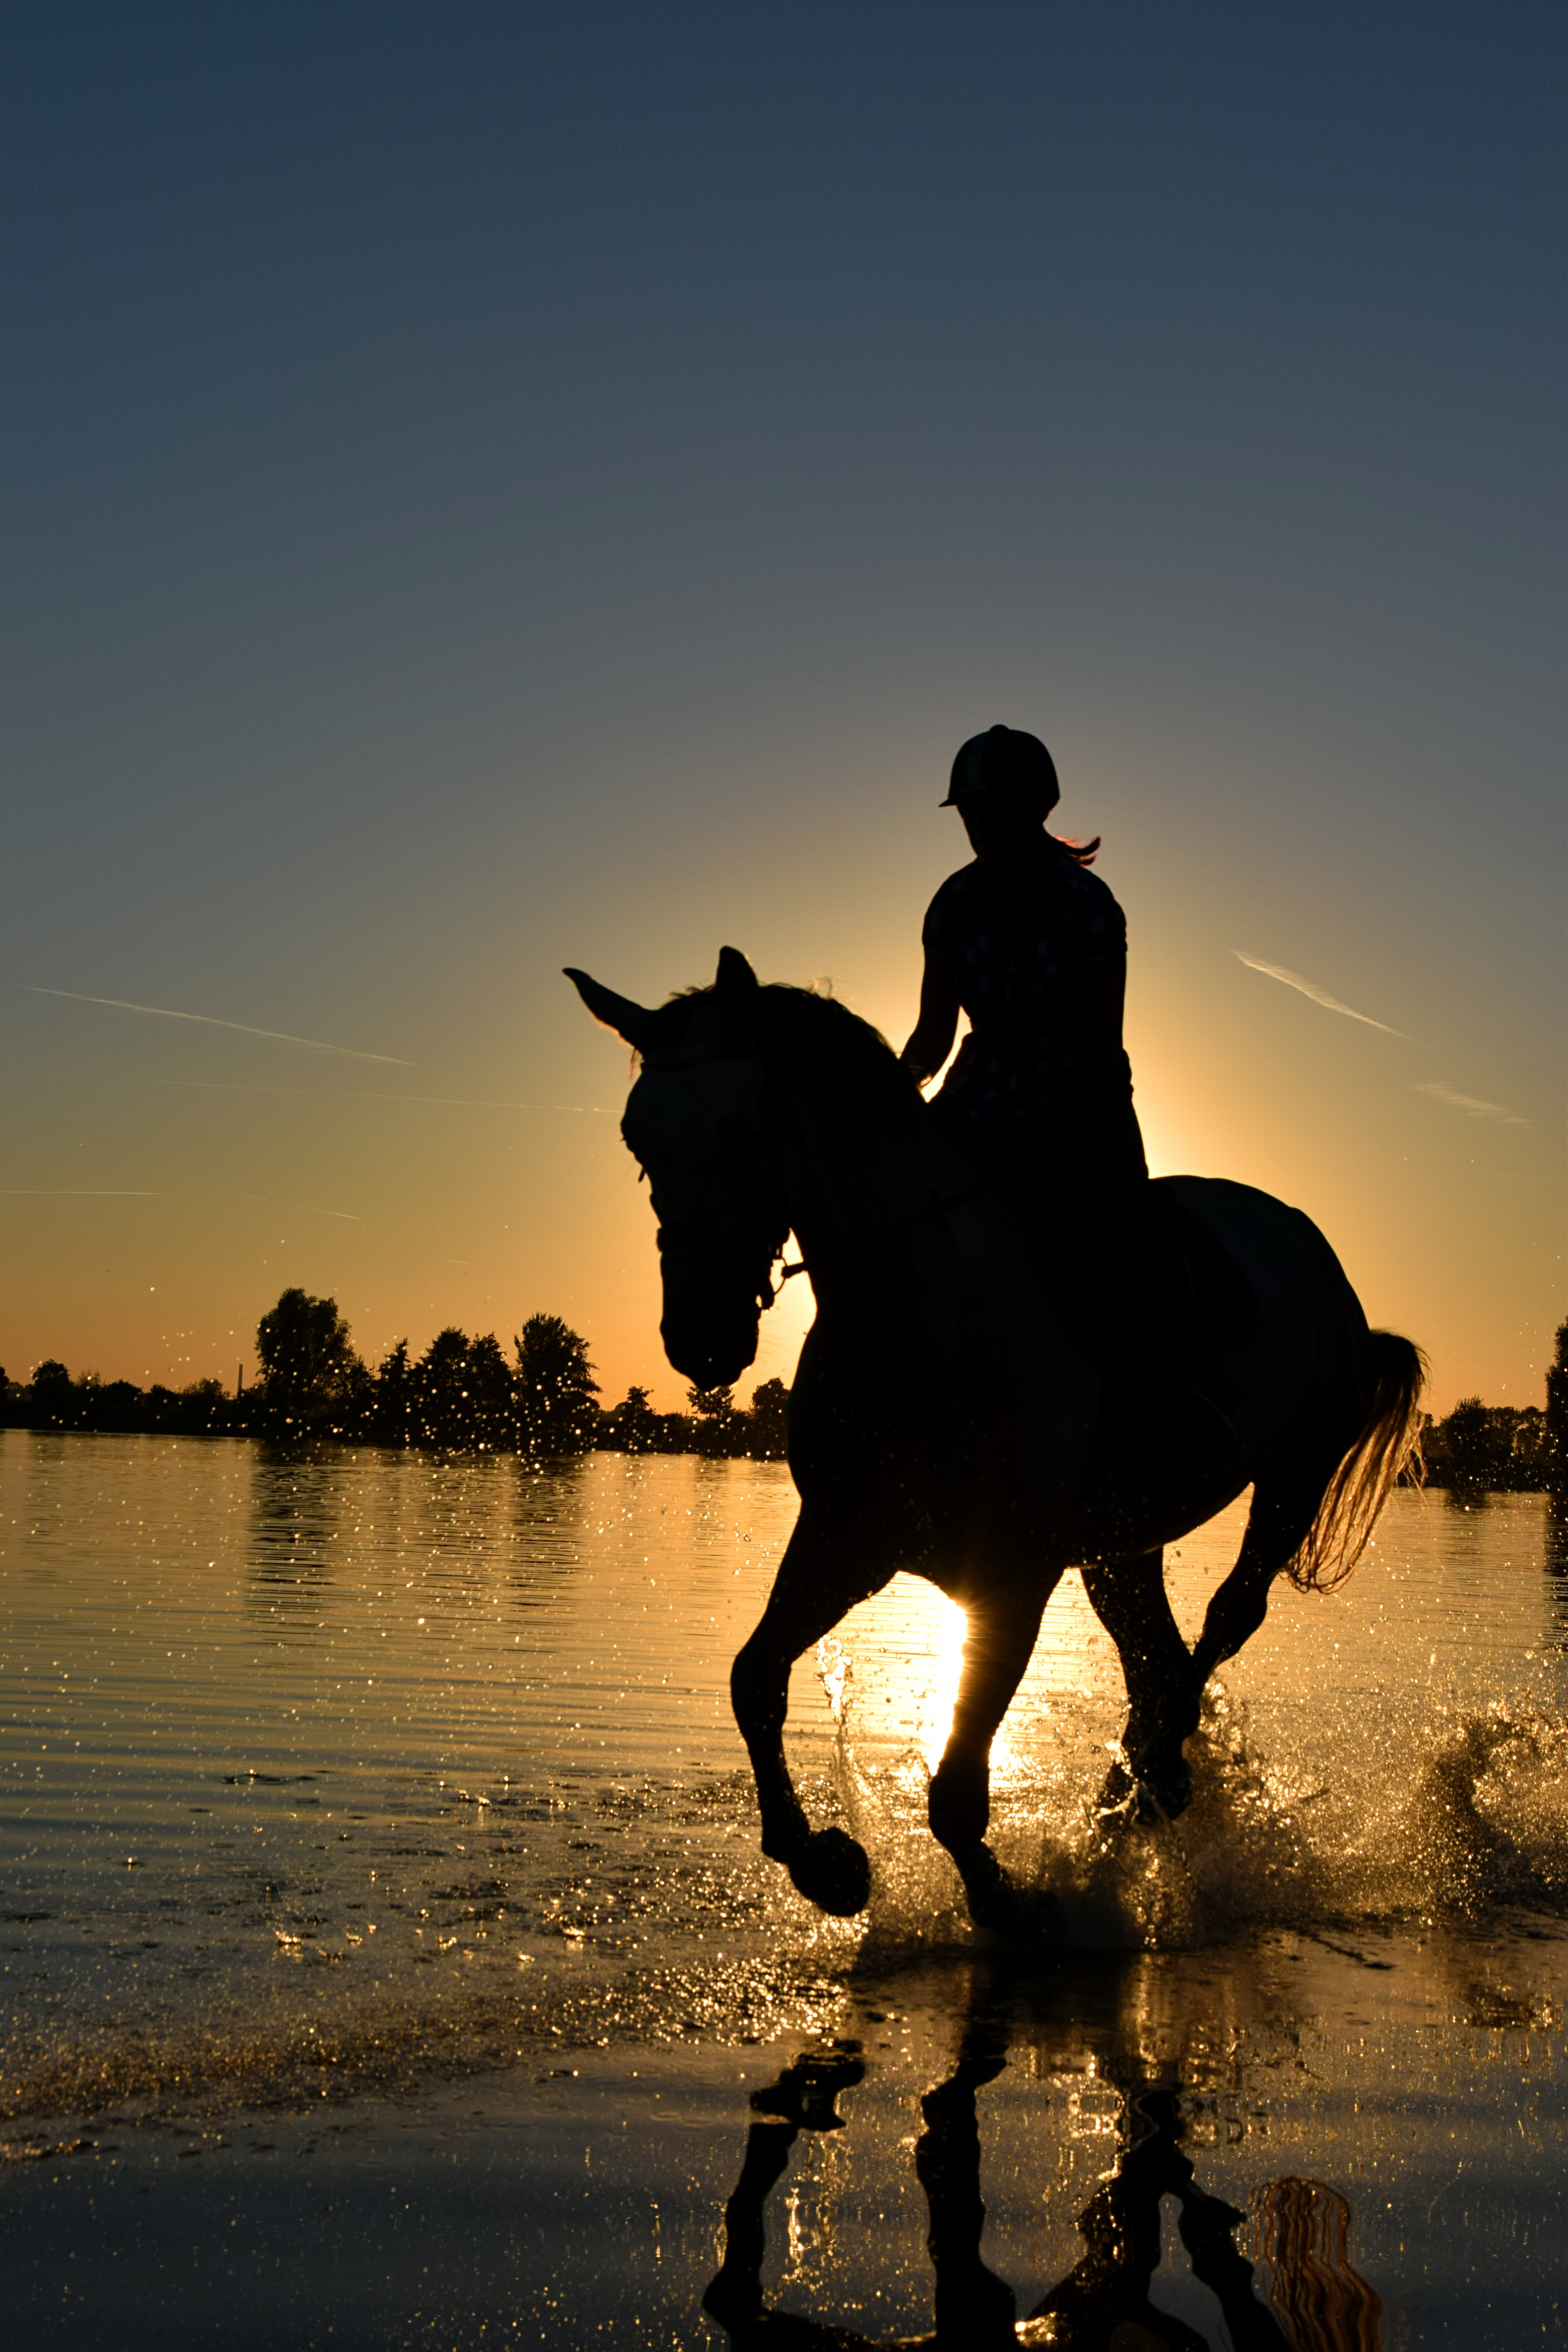 Shoot For The Moon Quote Wallpaper Silhouette Of Person Riding Horse On Body Of Water Under